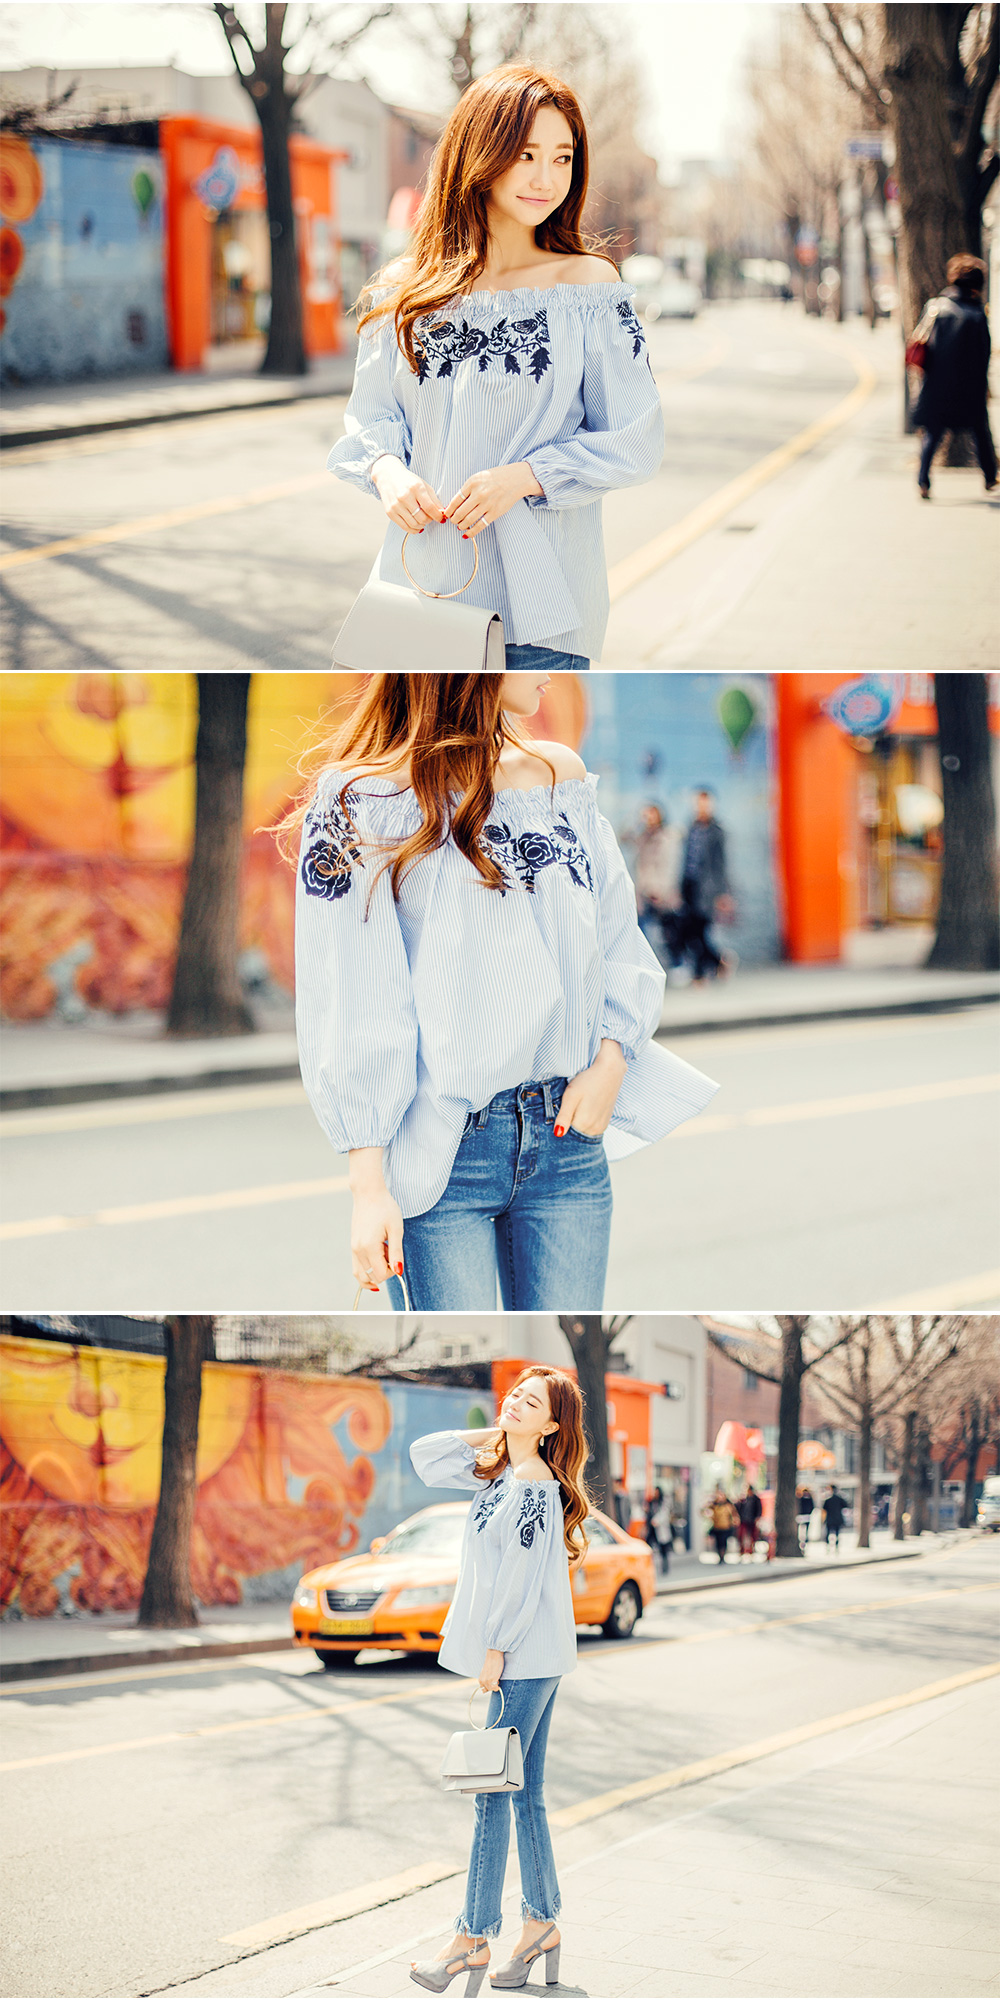 //cdn.nhanh.vn/cdn/store/29770/psCT/20181003/9325561/CHUU_Rose_Embroidered_Off_Shoulder_Blouse_(5).jpg